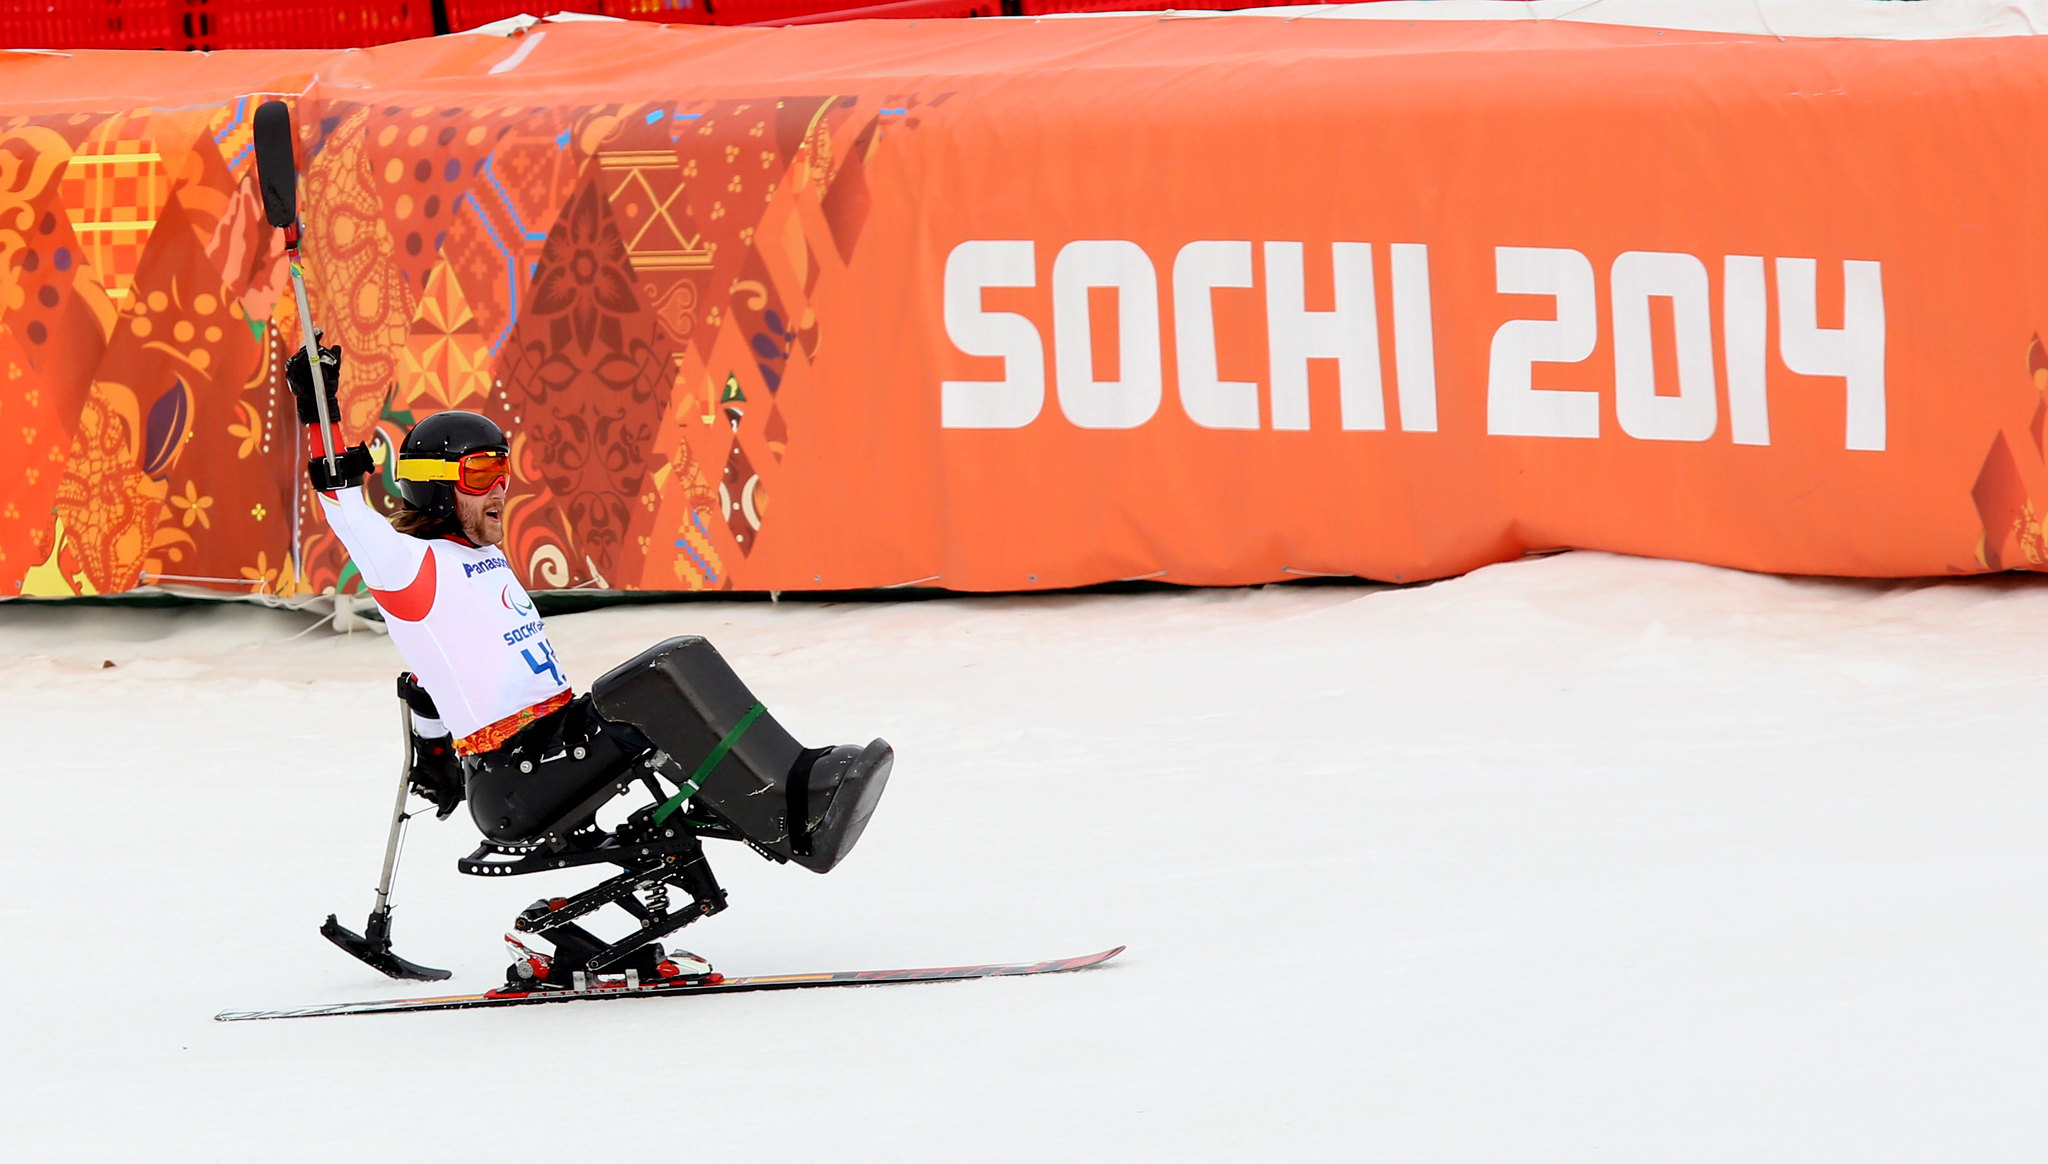 Caleb Brousseau at the Paralympic Winter Games in Sochi, RUS